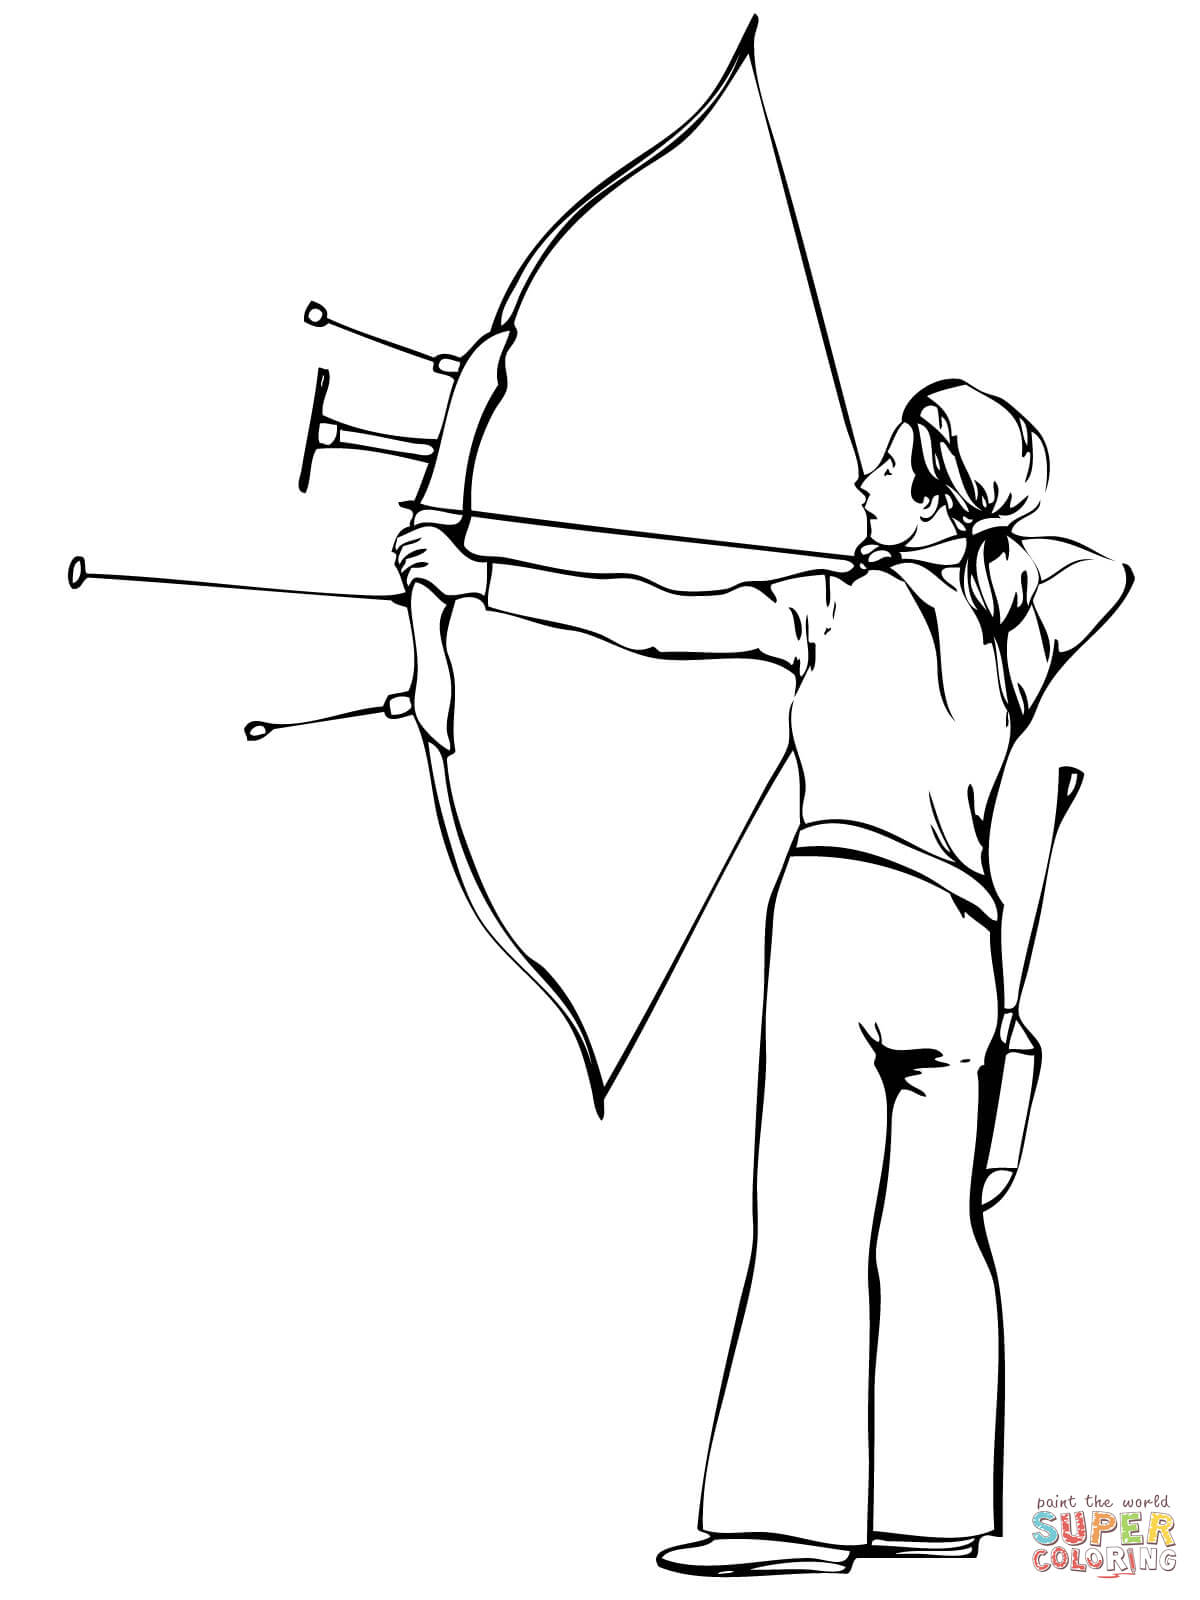 Shooting Recurve Bow Coloring Page